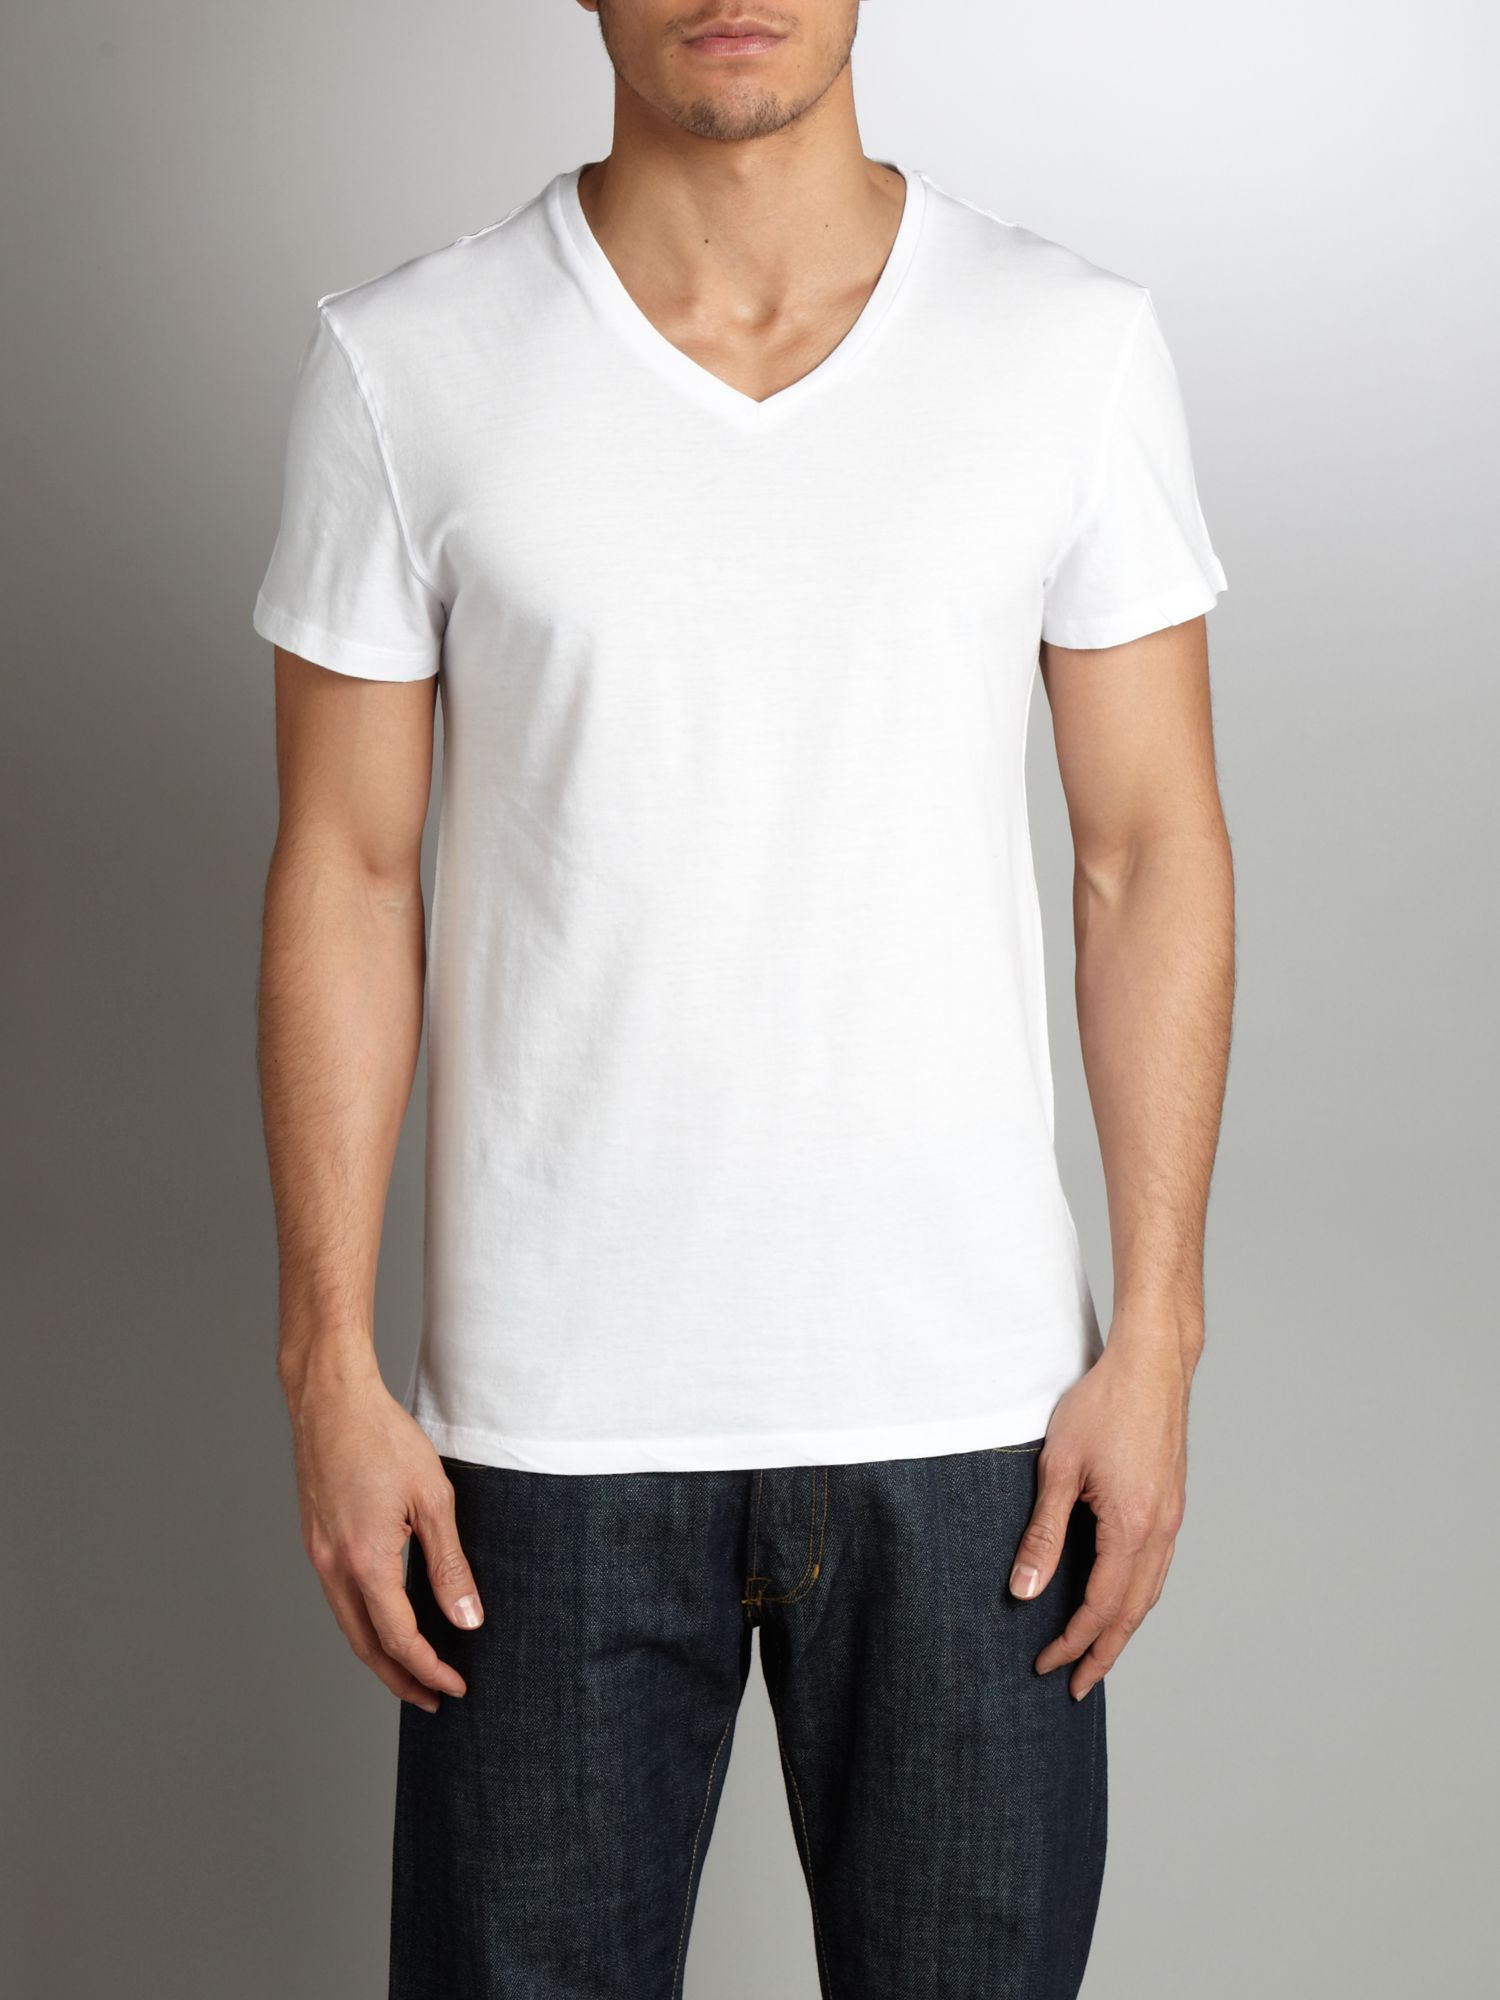 Linea Repair V-neck T-shirt - White product image